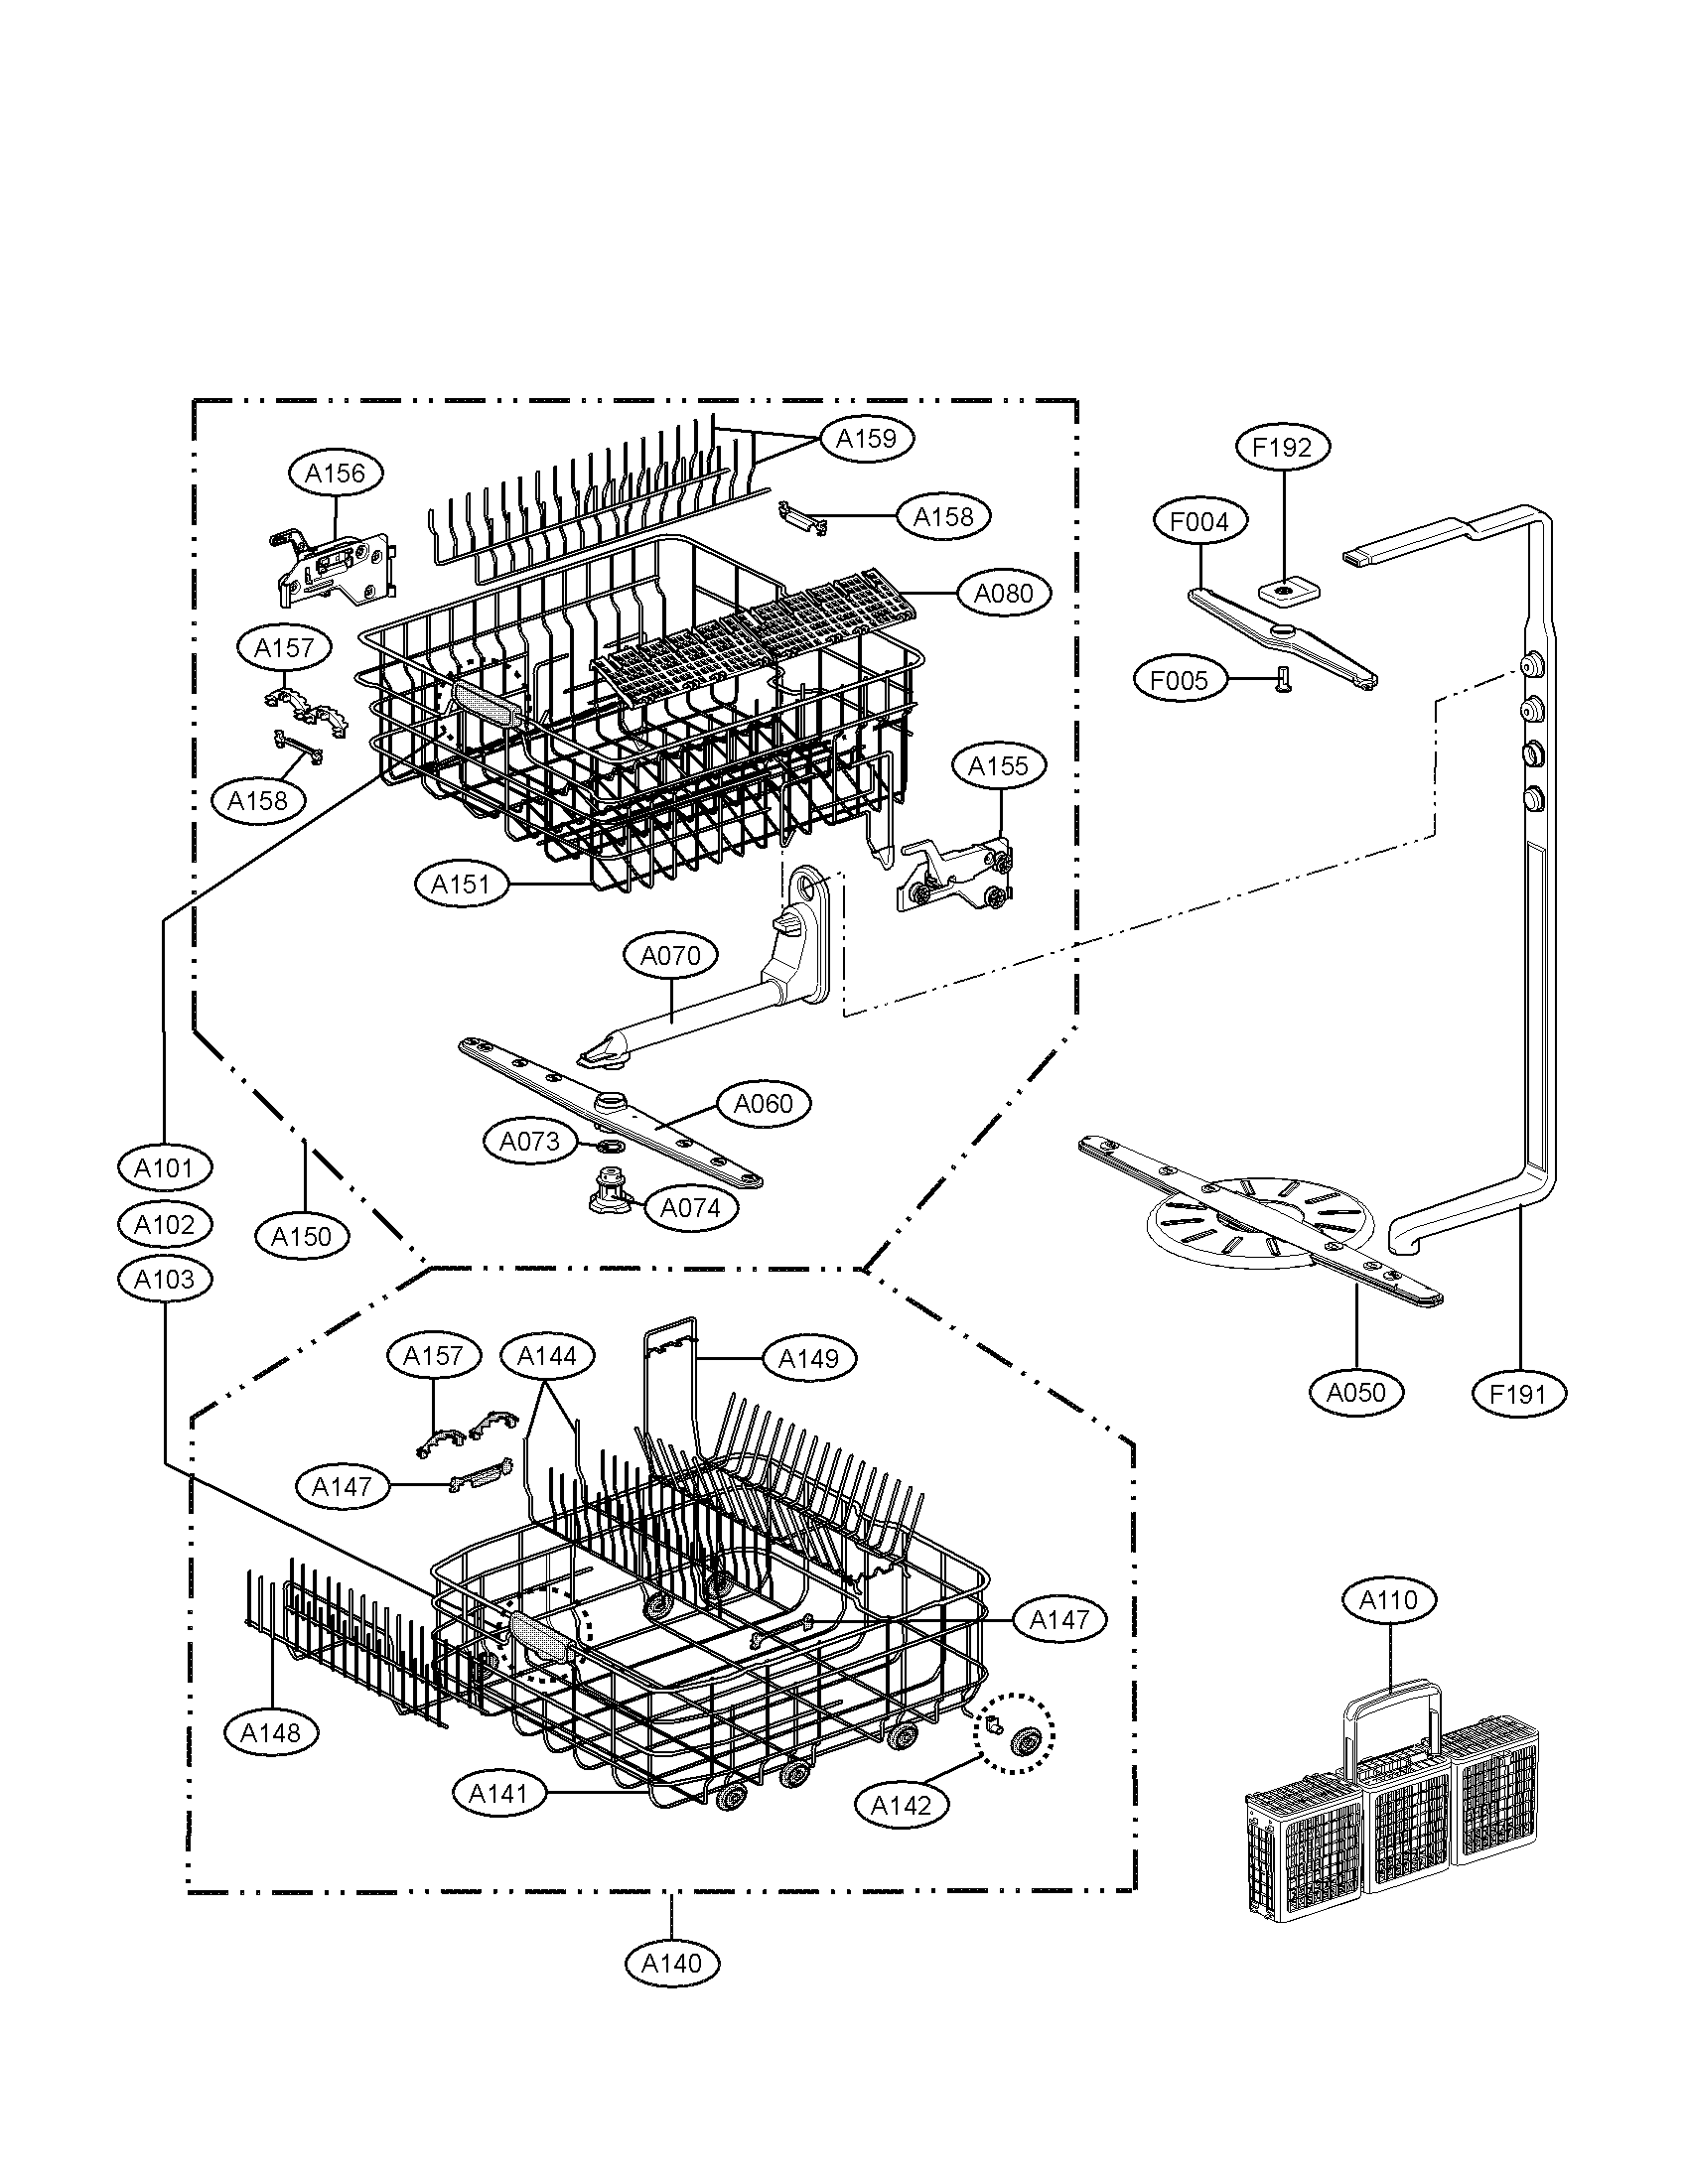 Wiring Diagram: 32 Lg Dishwasher Parts Diagram